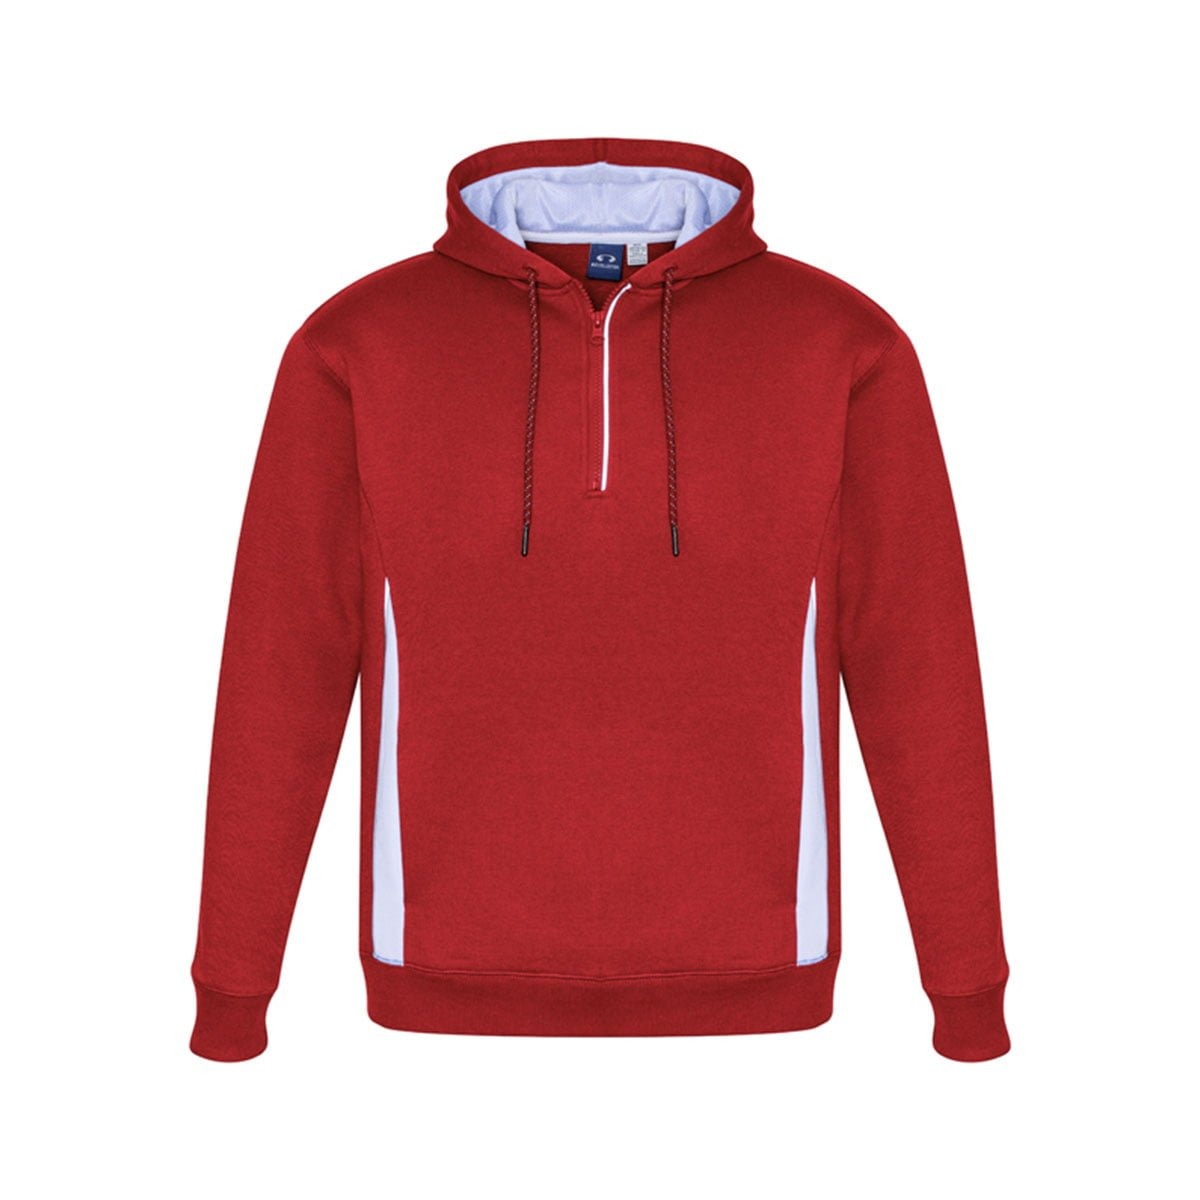 Adults Renegade Hoodie-Red / White / Silver